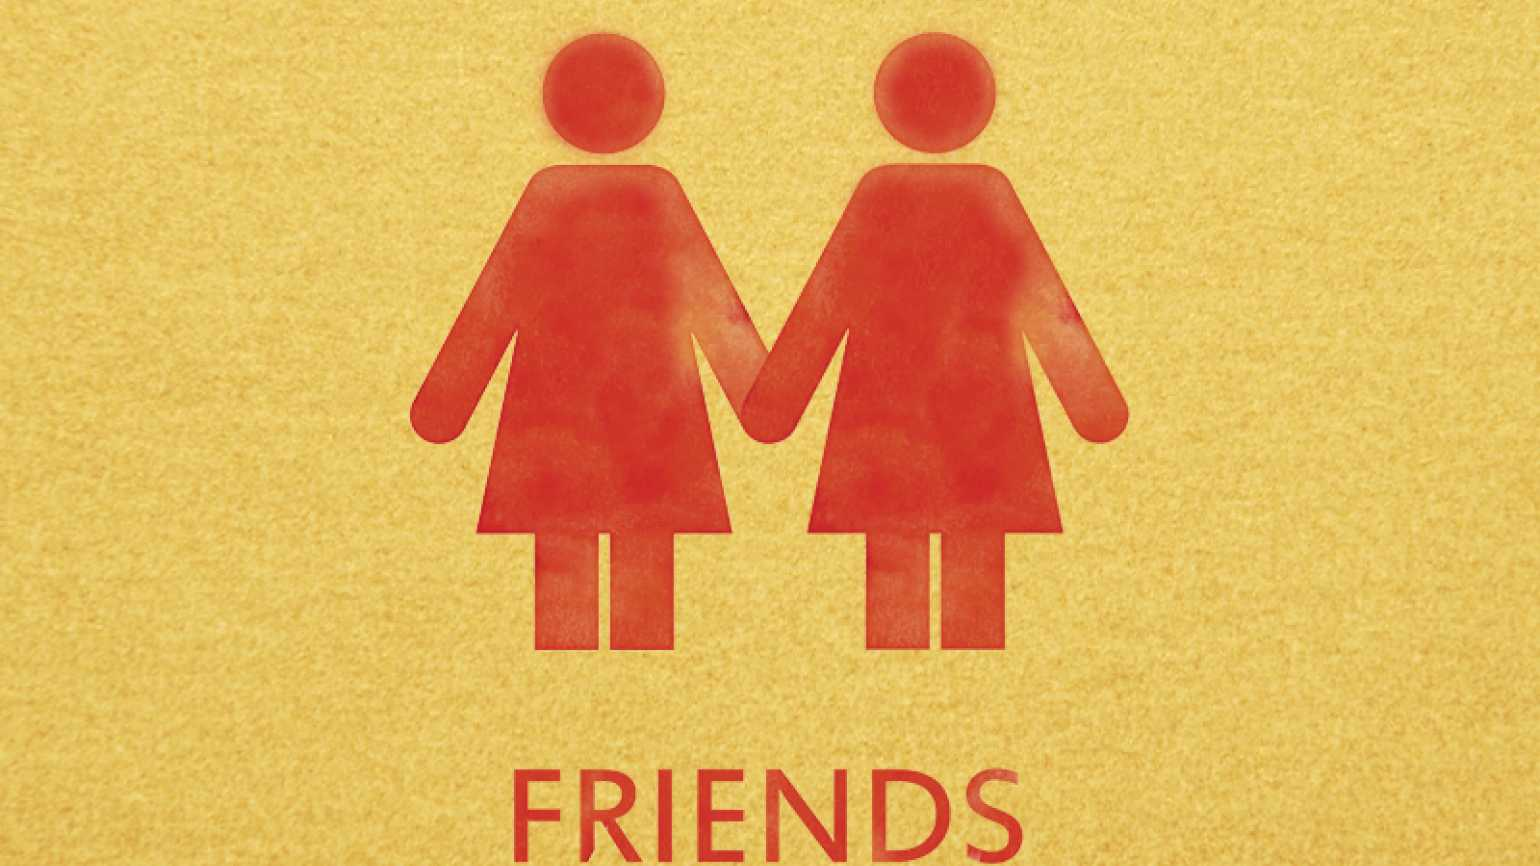 A bathroom door sign reading Friends with two female stick figures holding hands